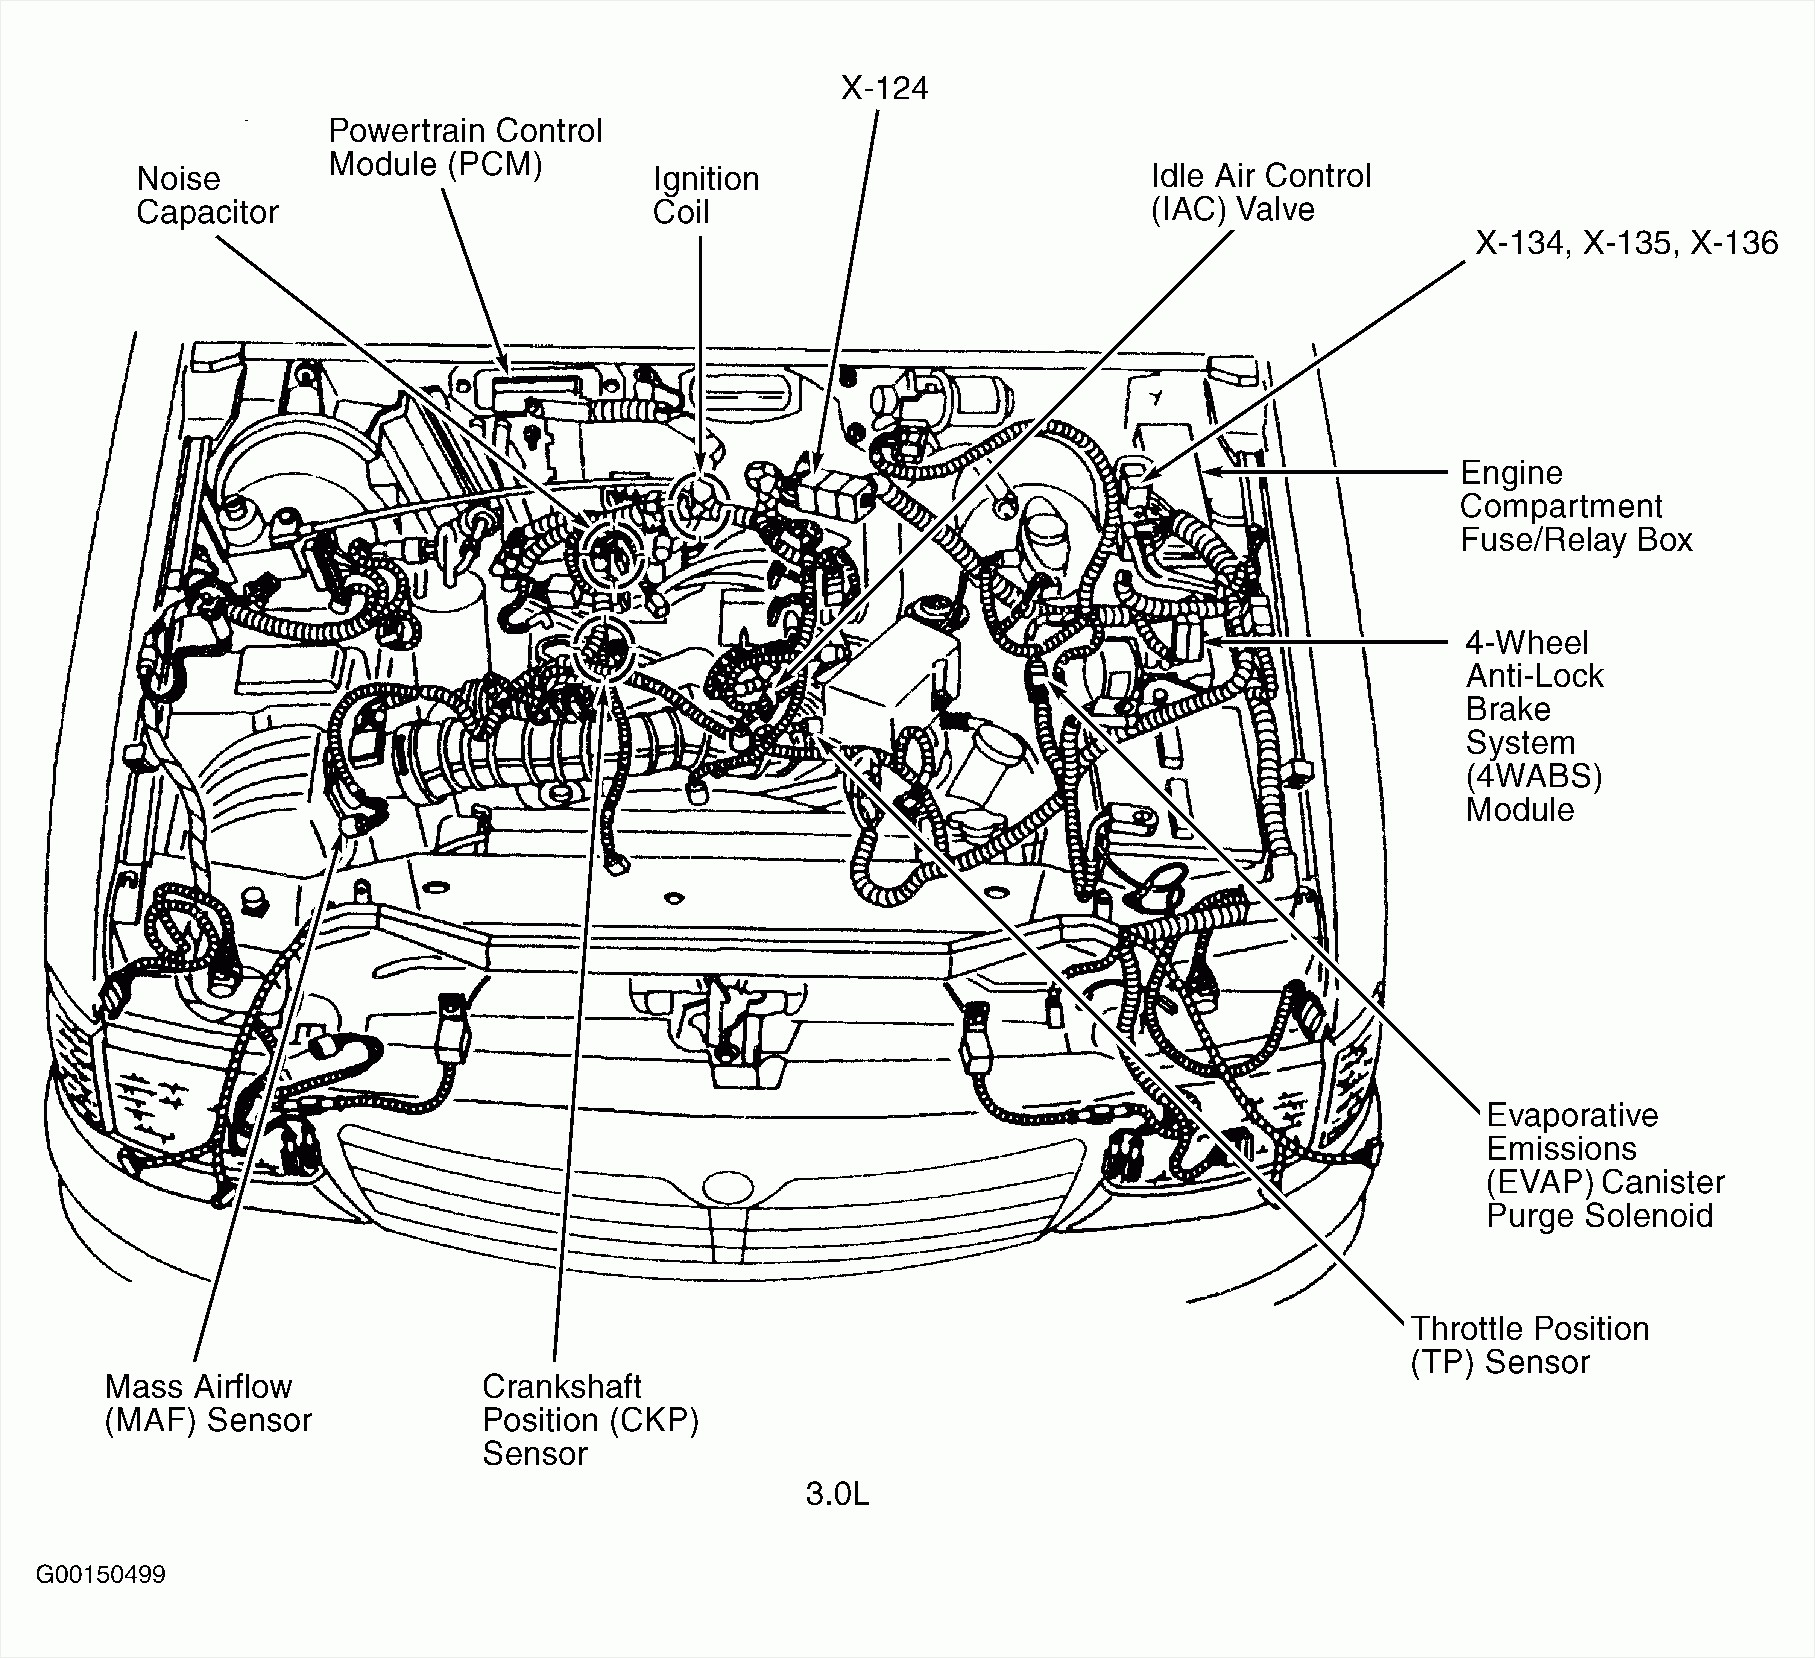 2003 Mini Cooper Engine Diagram - Get Rid Of Wiring Diagram ...  Mini Cooper Ac Wiring Schematic on honda ac schematic, porsche 944 ac schematic, toyota ac schematic, ford bronco ac schematic,